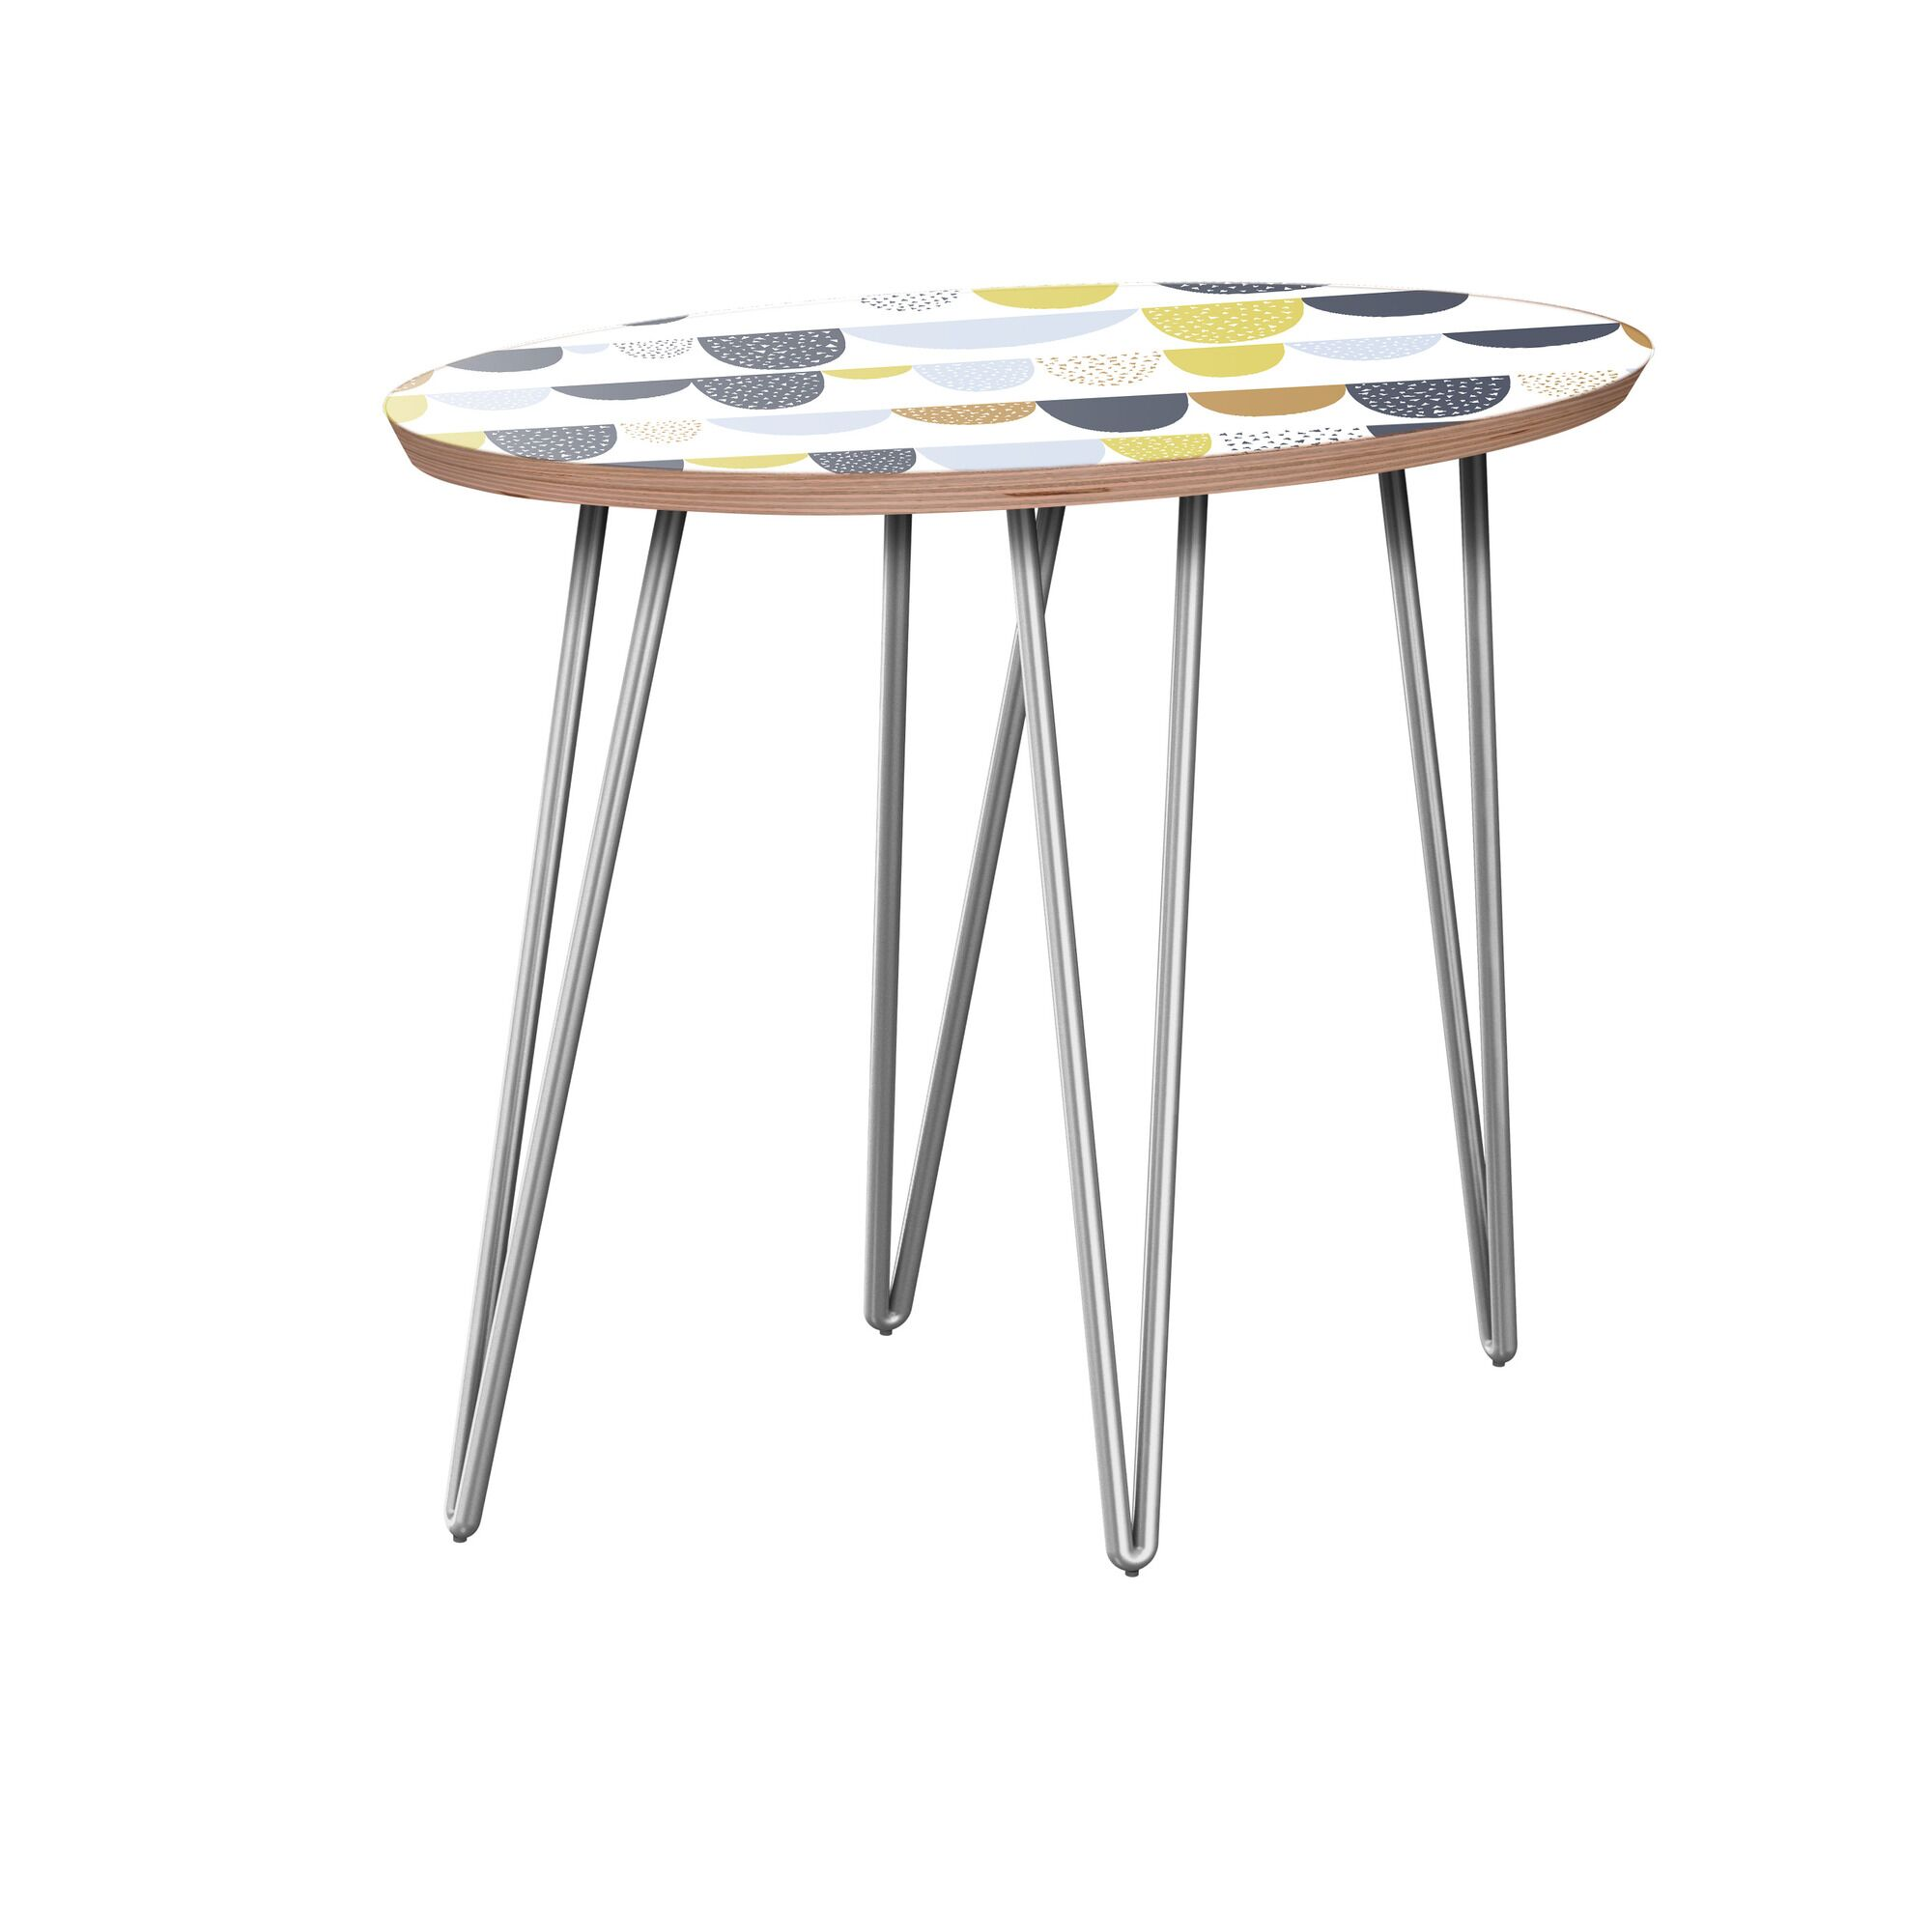 Junior End Table Table Base Color: Chrome, Table Top Color: Walnut